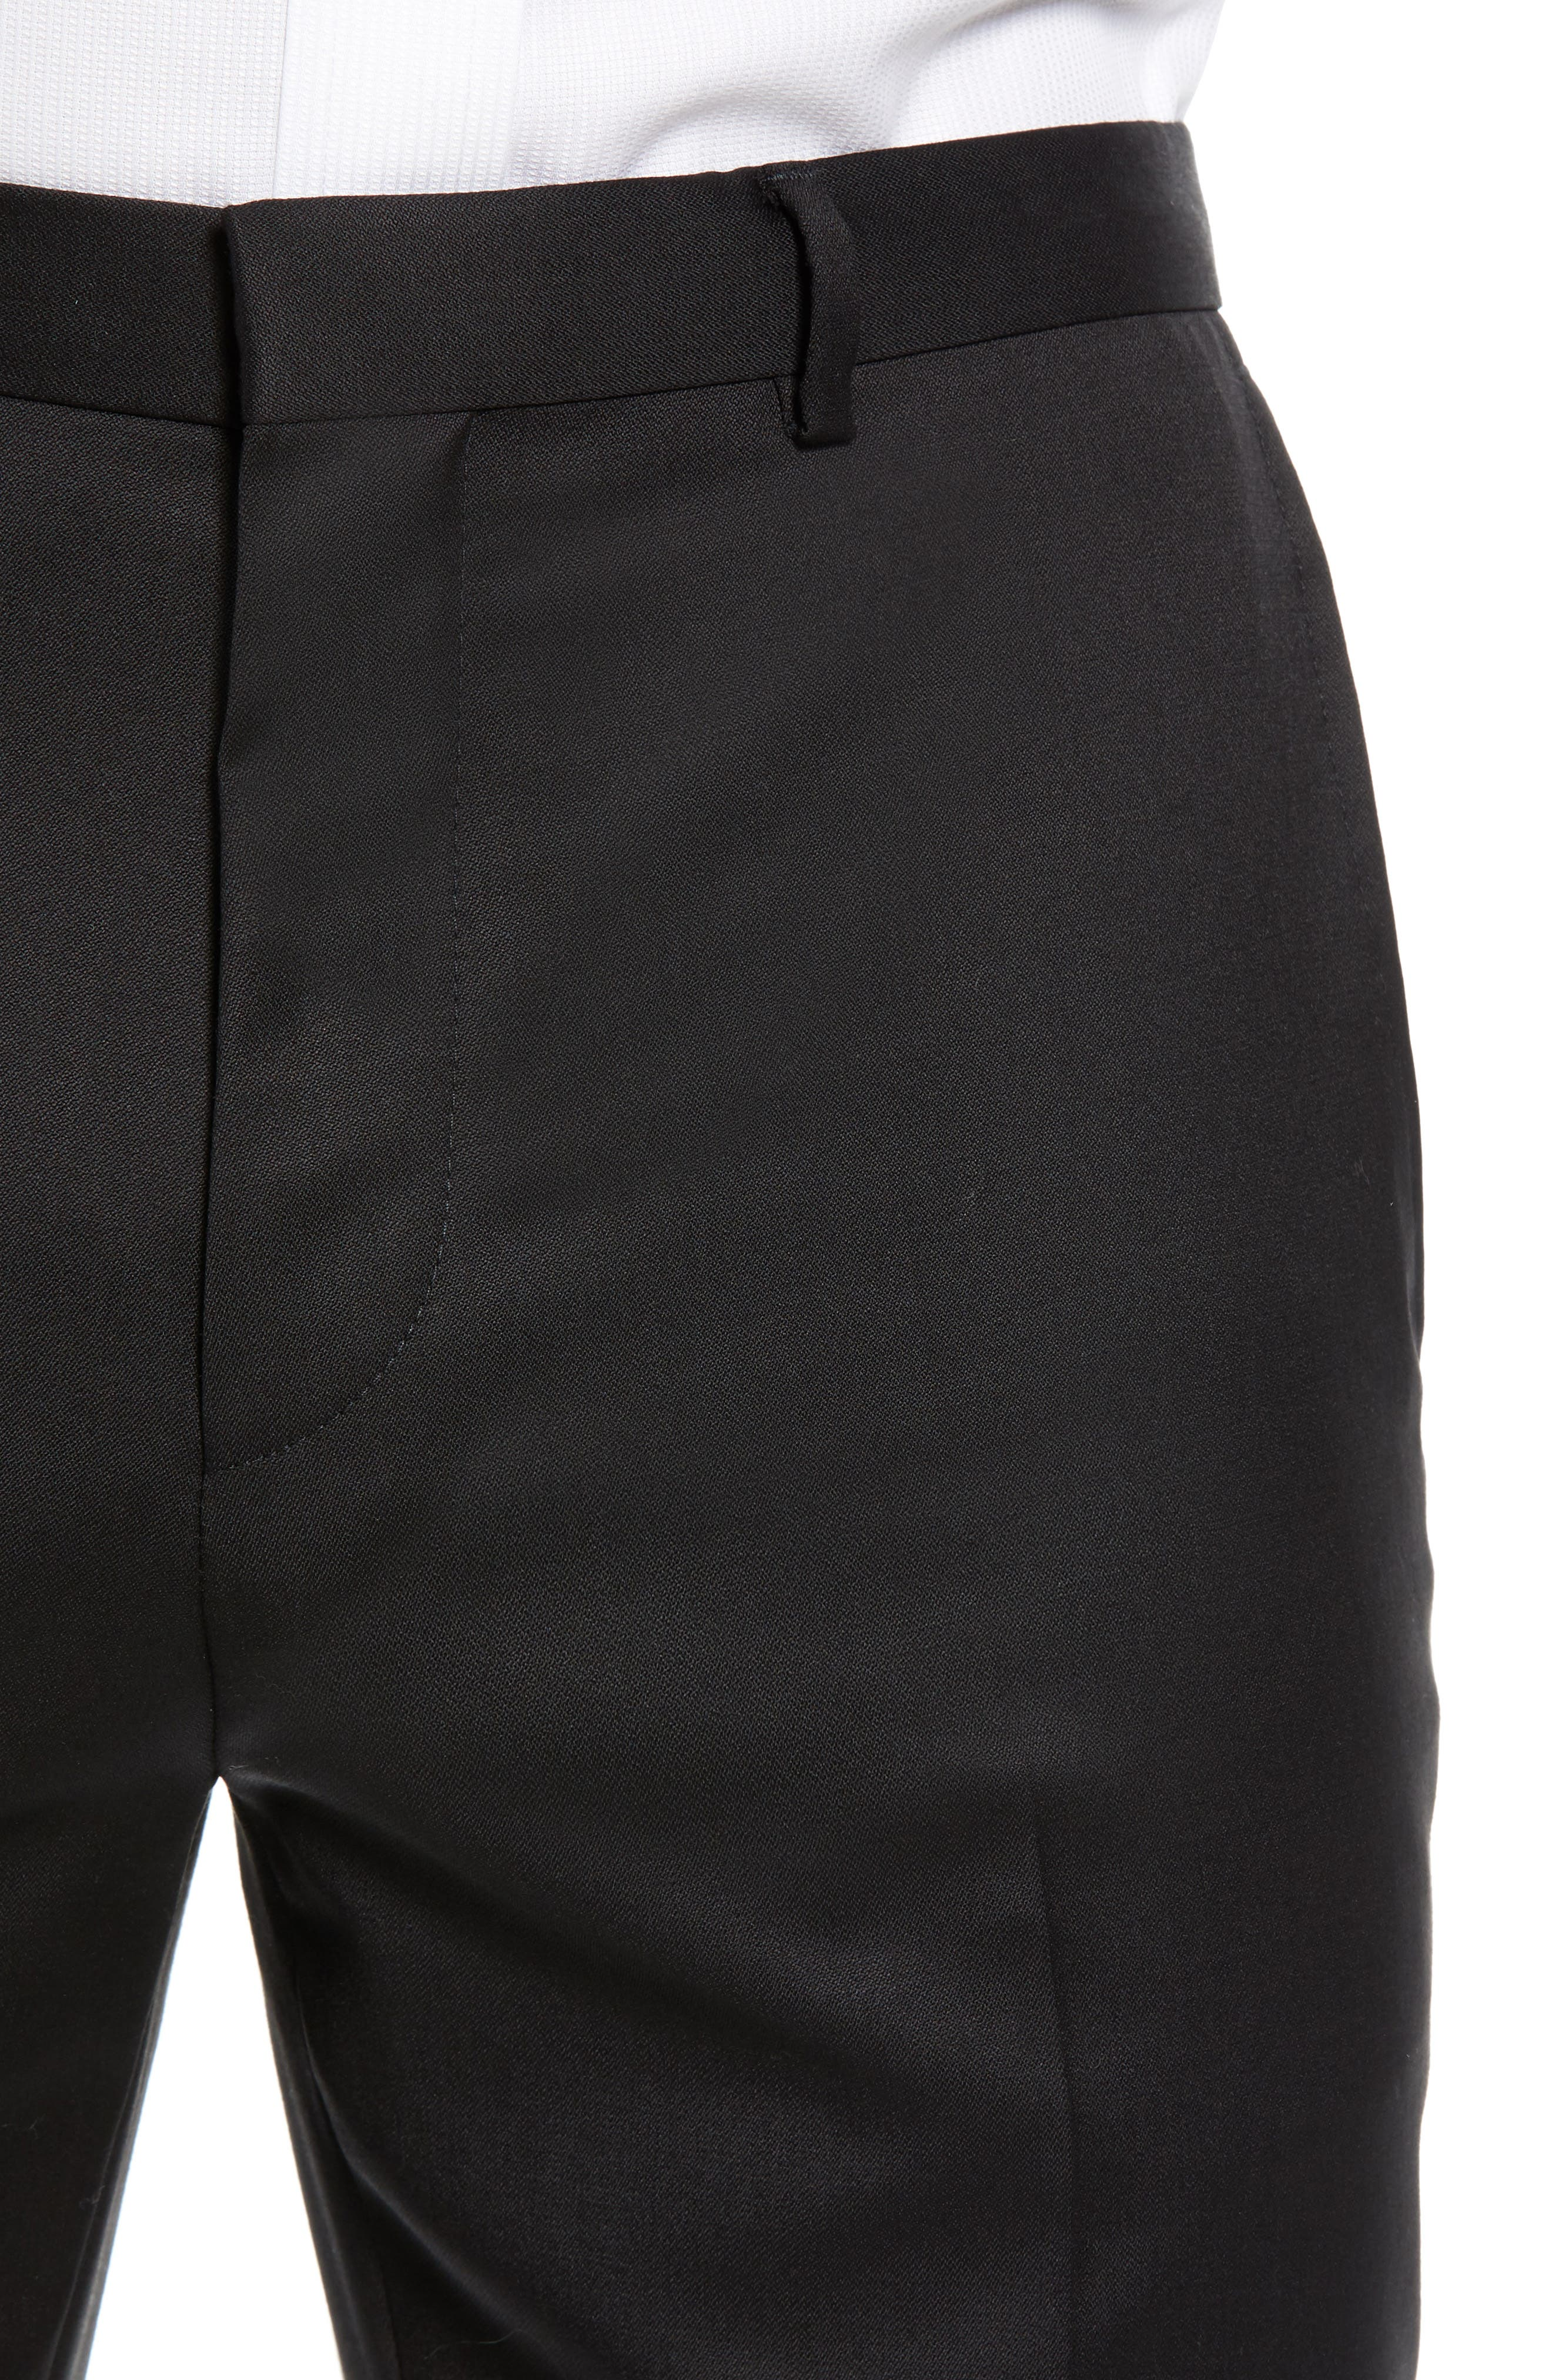 Hartley Extra Slim Trousers,                             Alternate thumbnail 4, color,                             BLACK